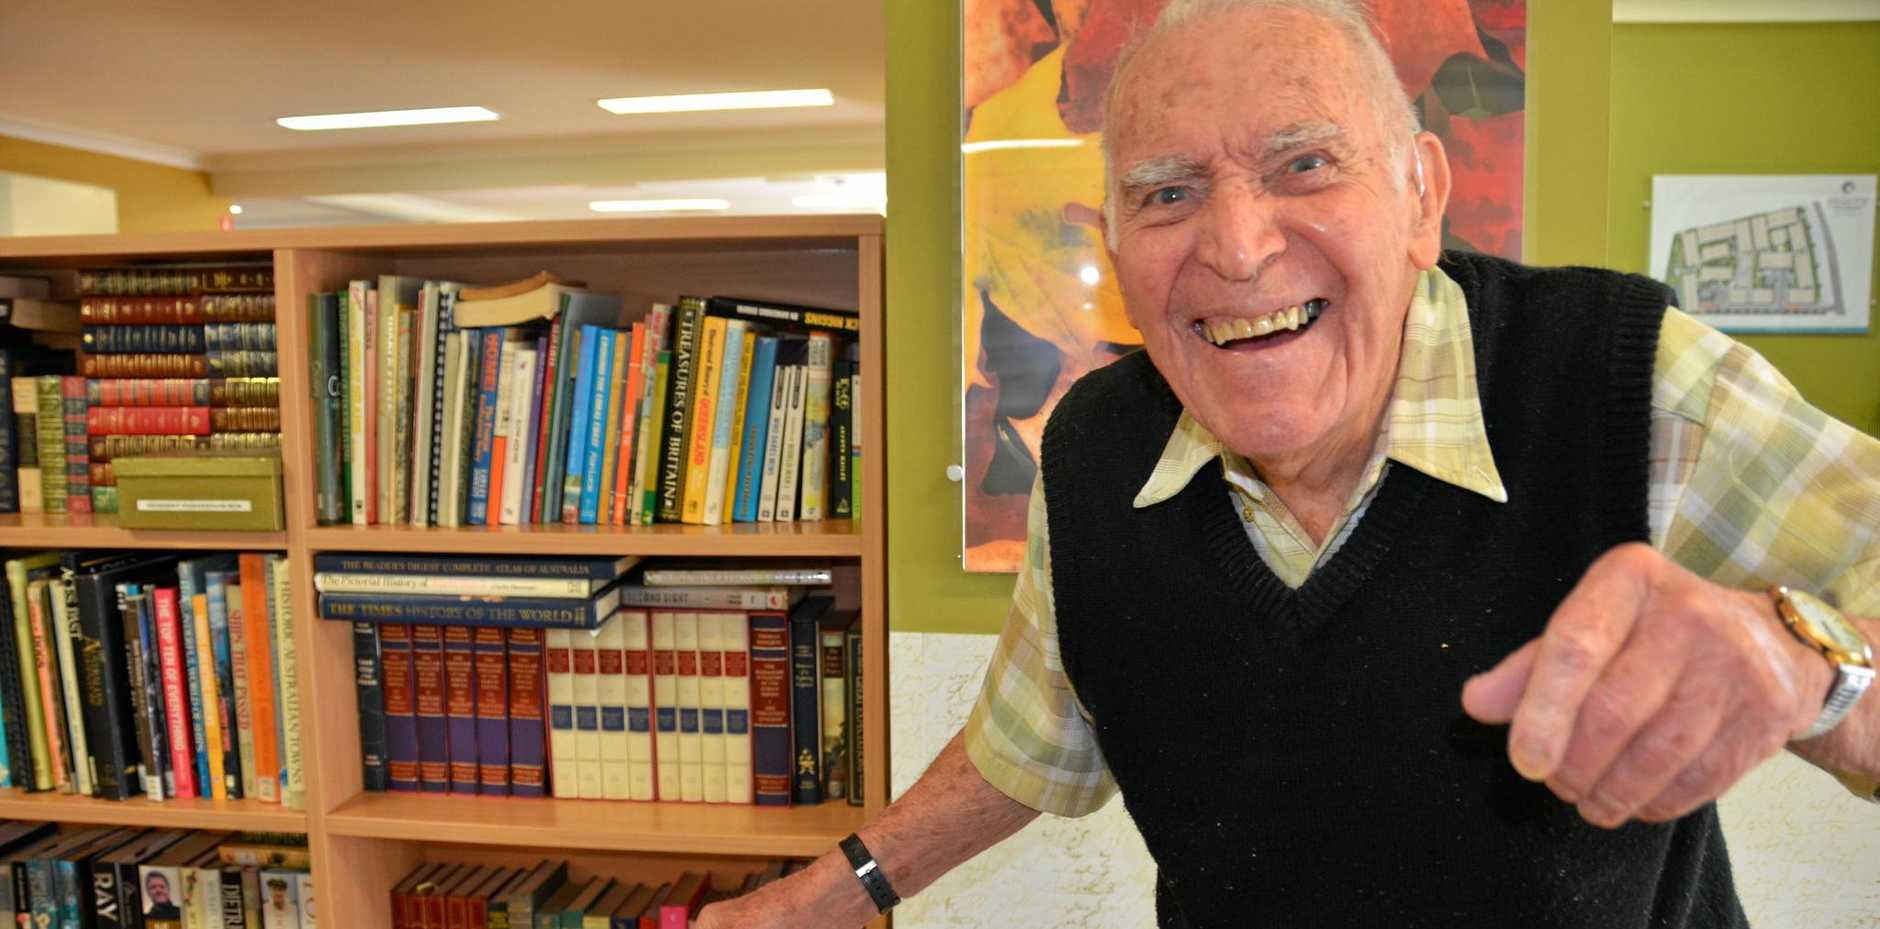 Arthur Rosbrook is an inspiration to everyone, young and old.